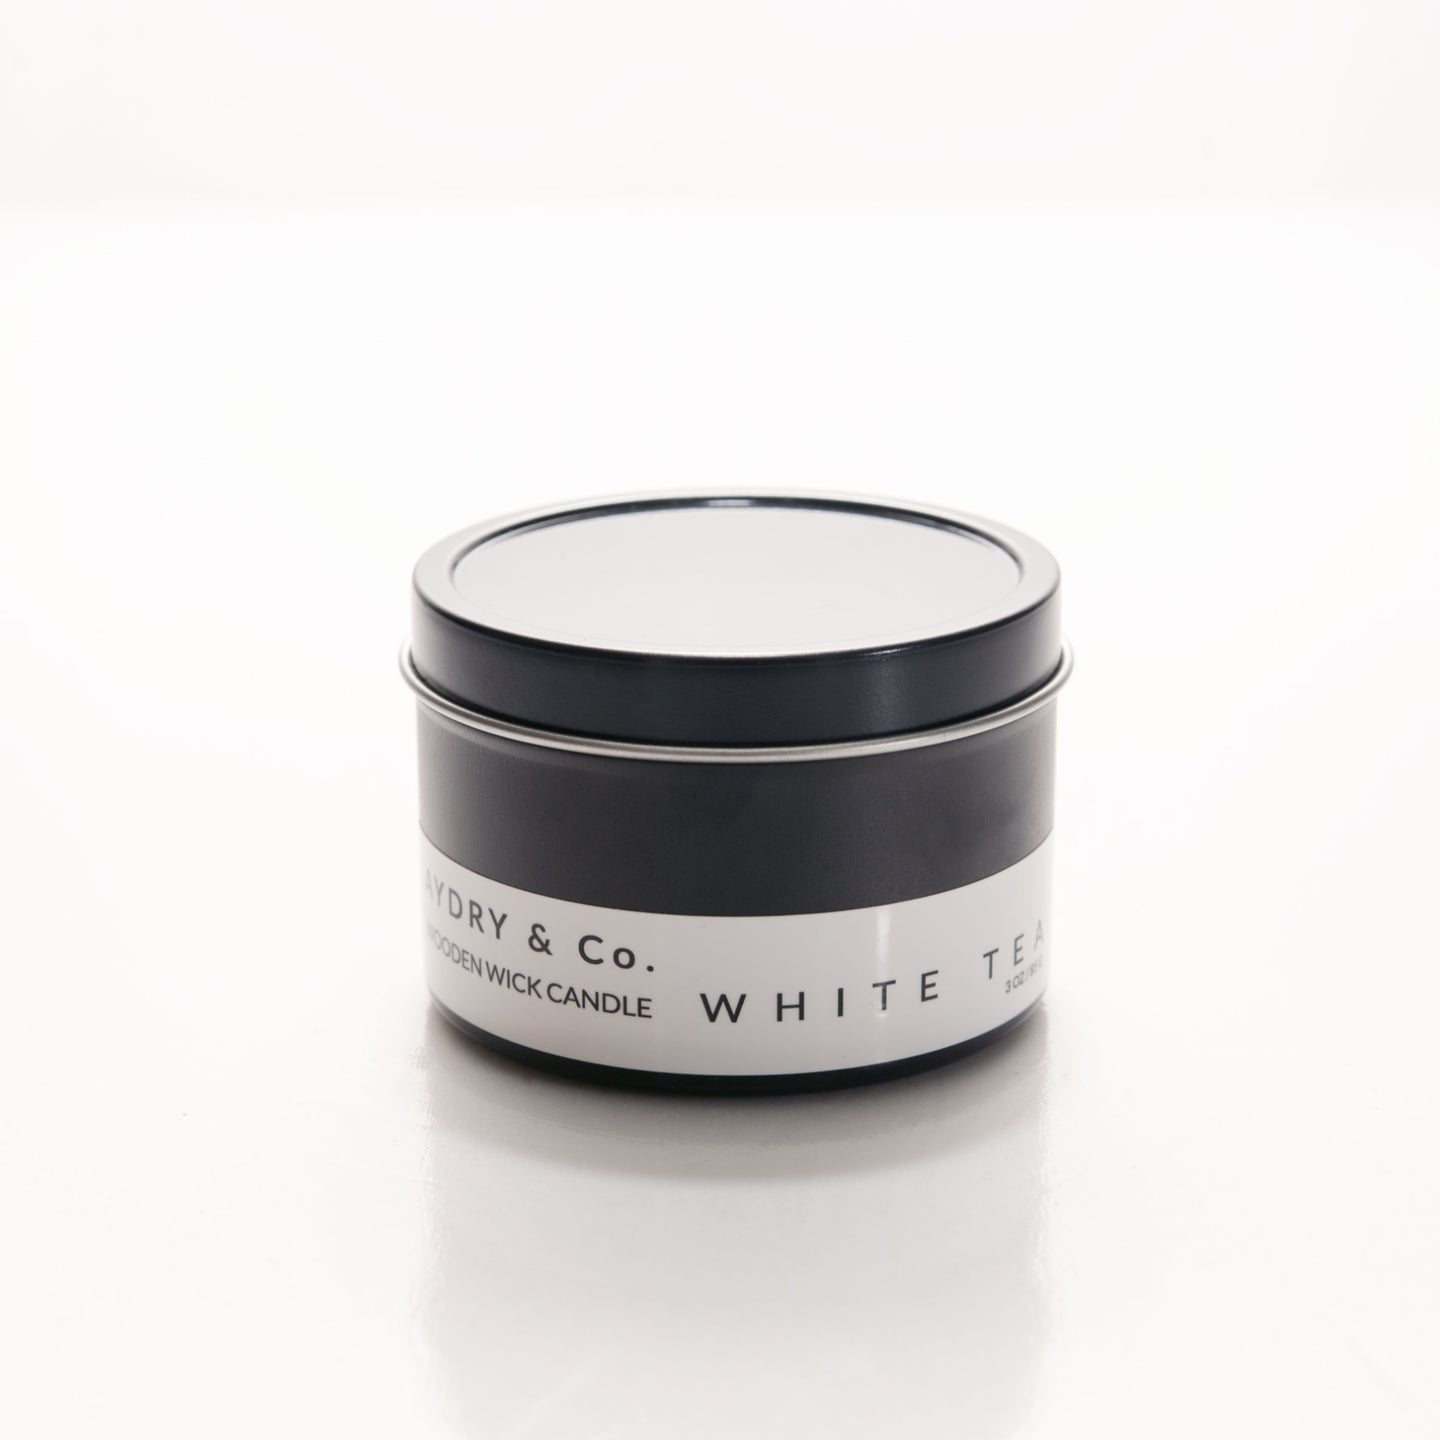 Refresh Moment Aydry & Co. White Tea